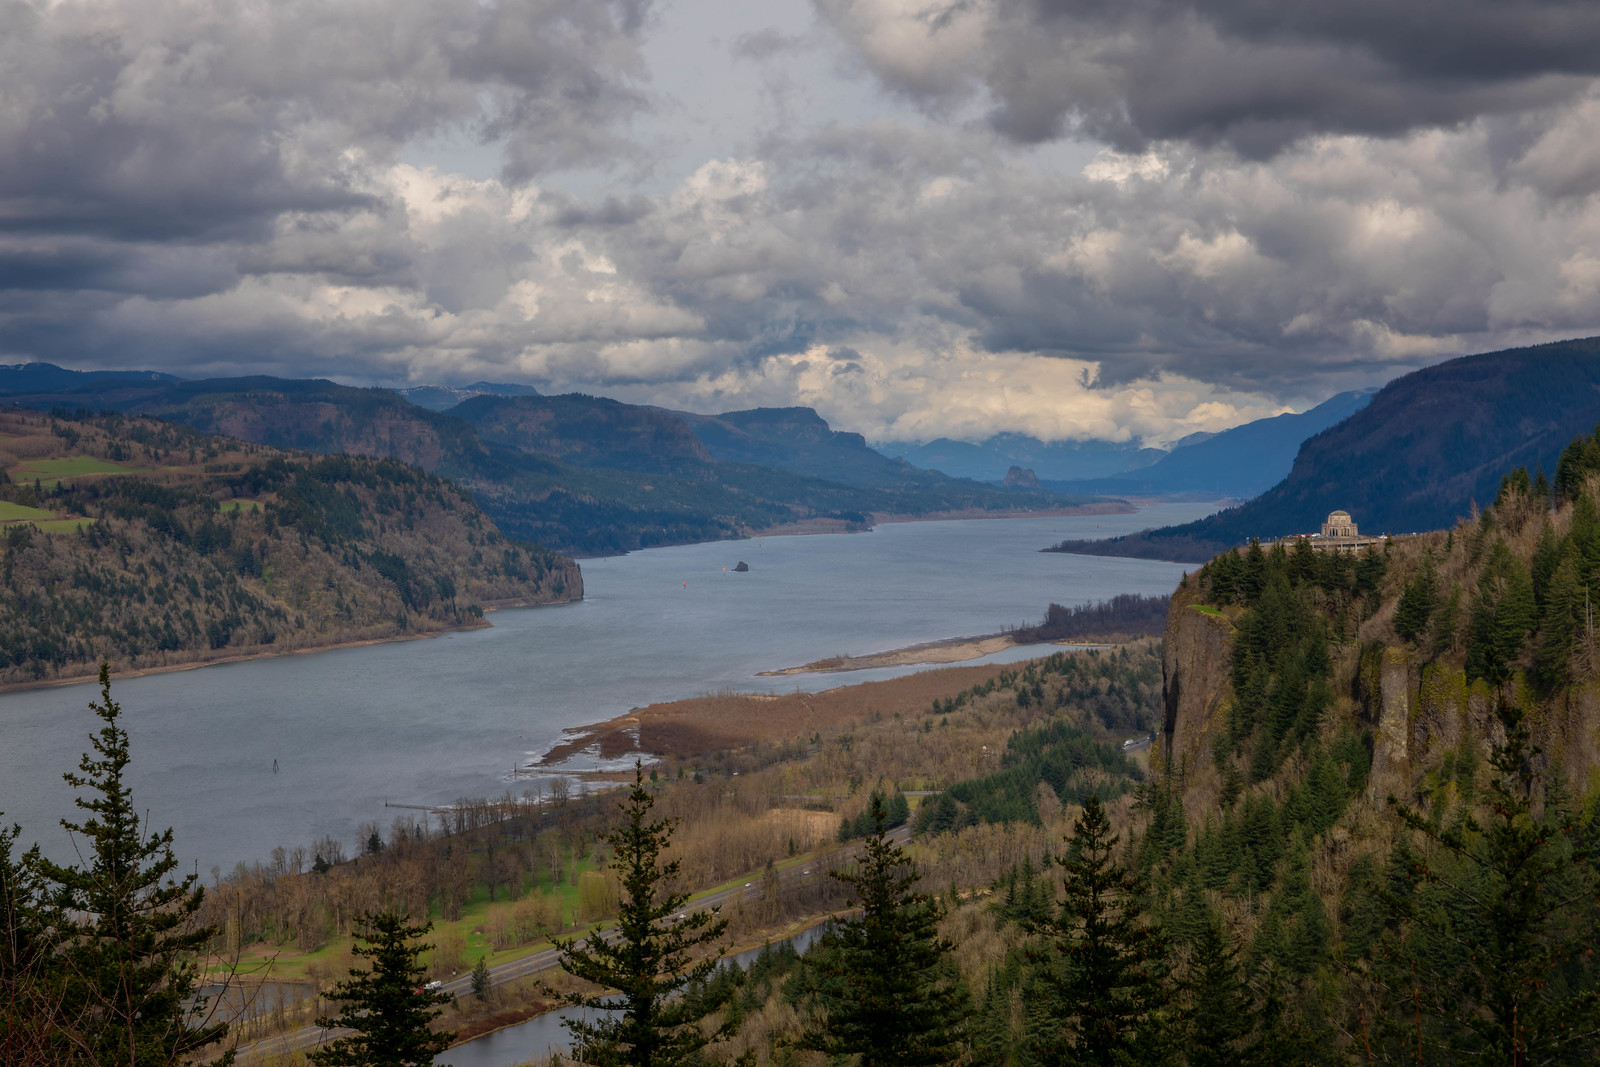 04.03. Columbia River, OR